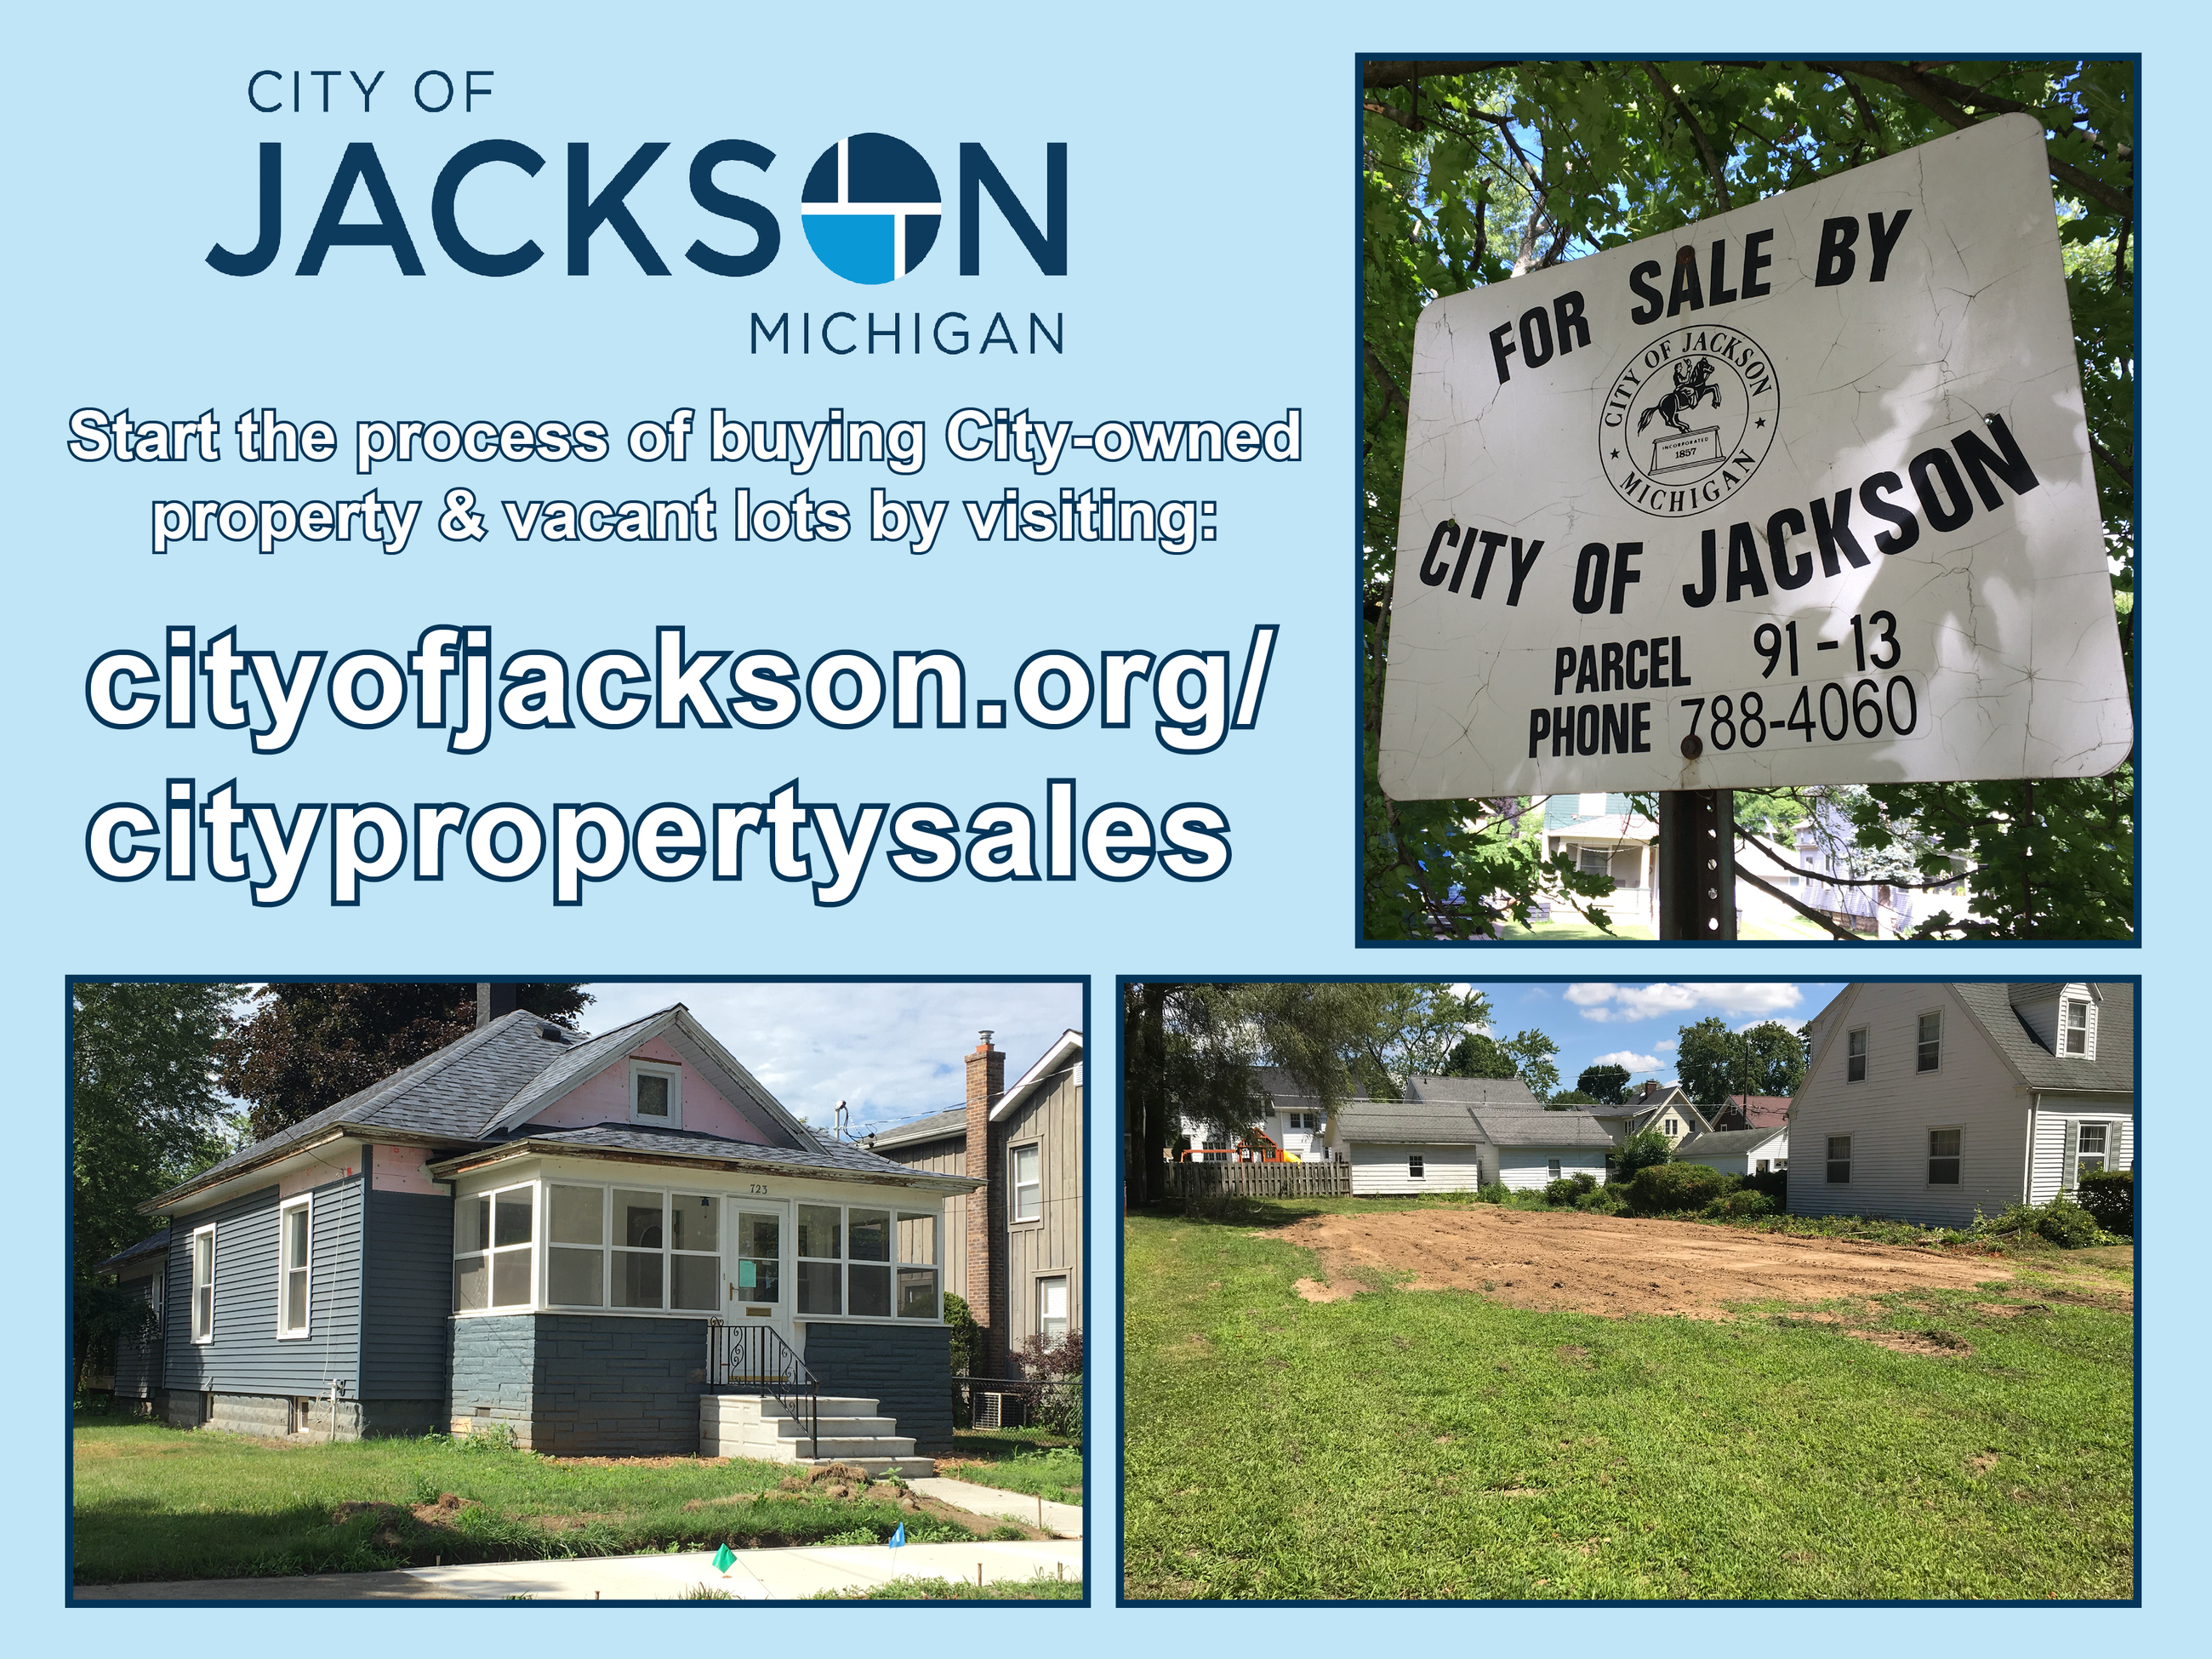 City Property Sales promotional graphic